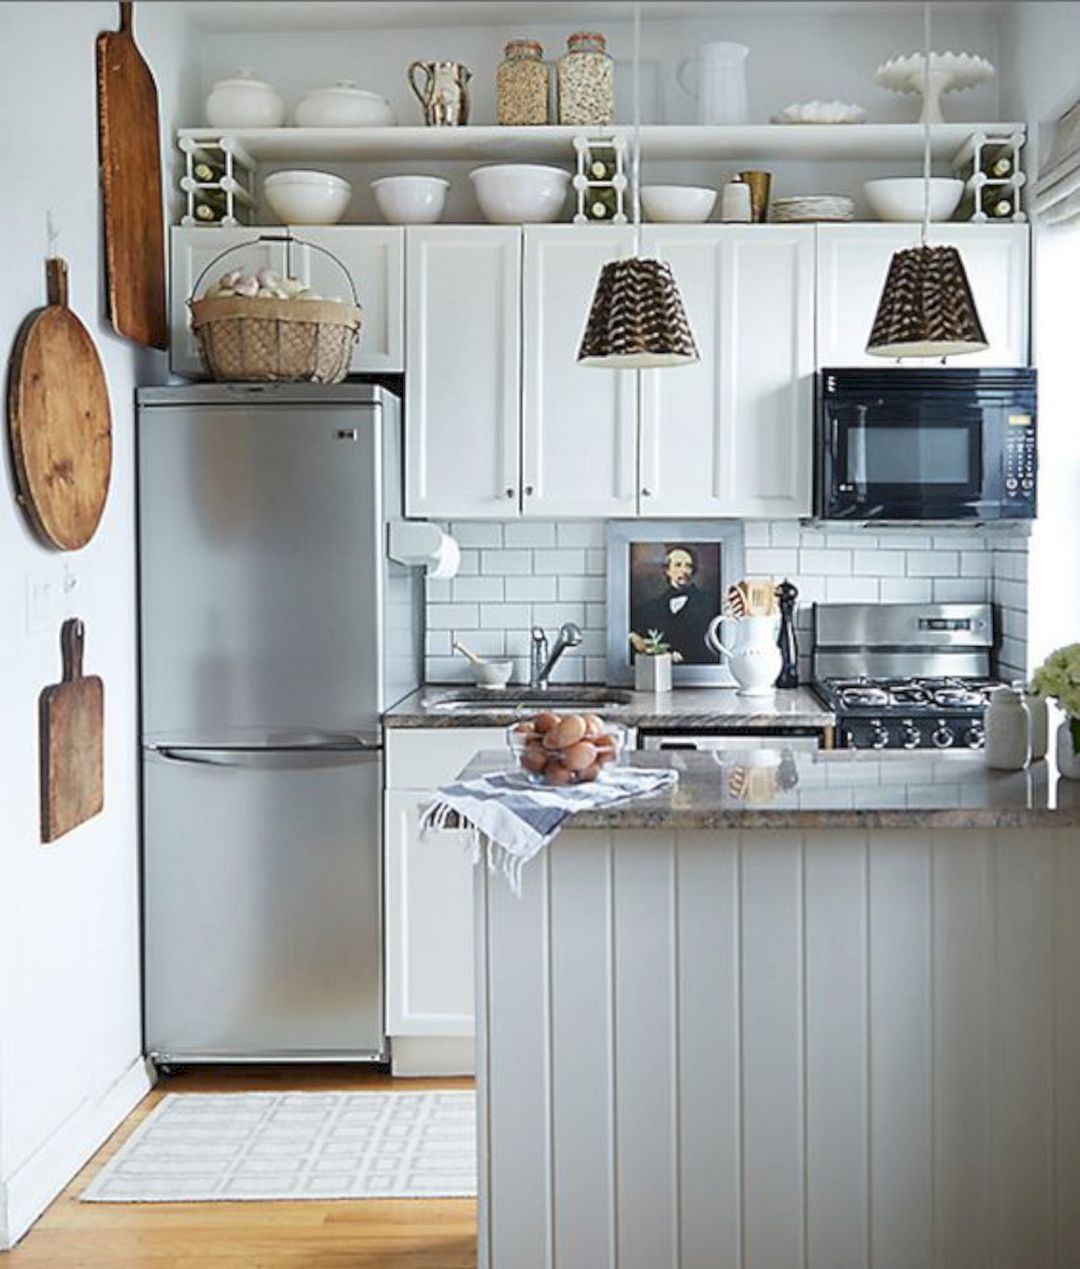 15 Clever Renovation Ideas to Update Your Small Kitchen | Gorgeous ...